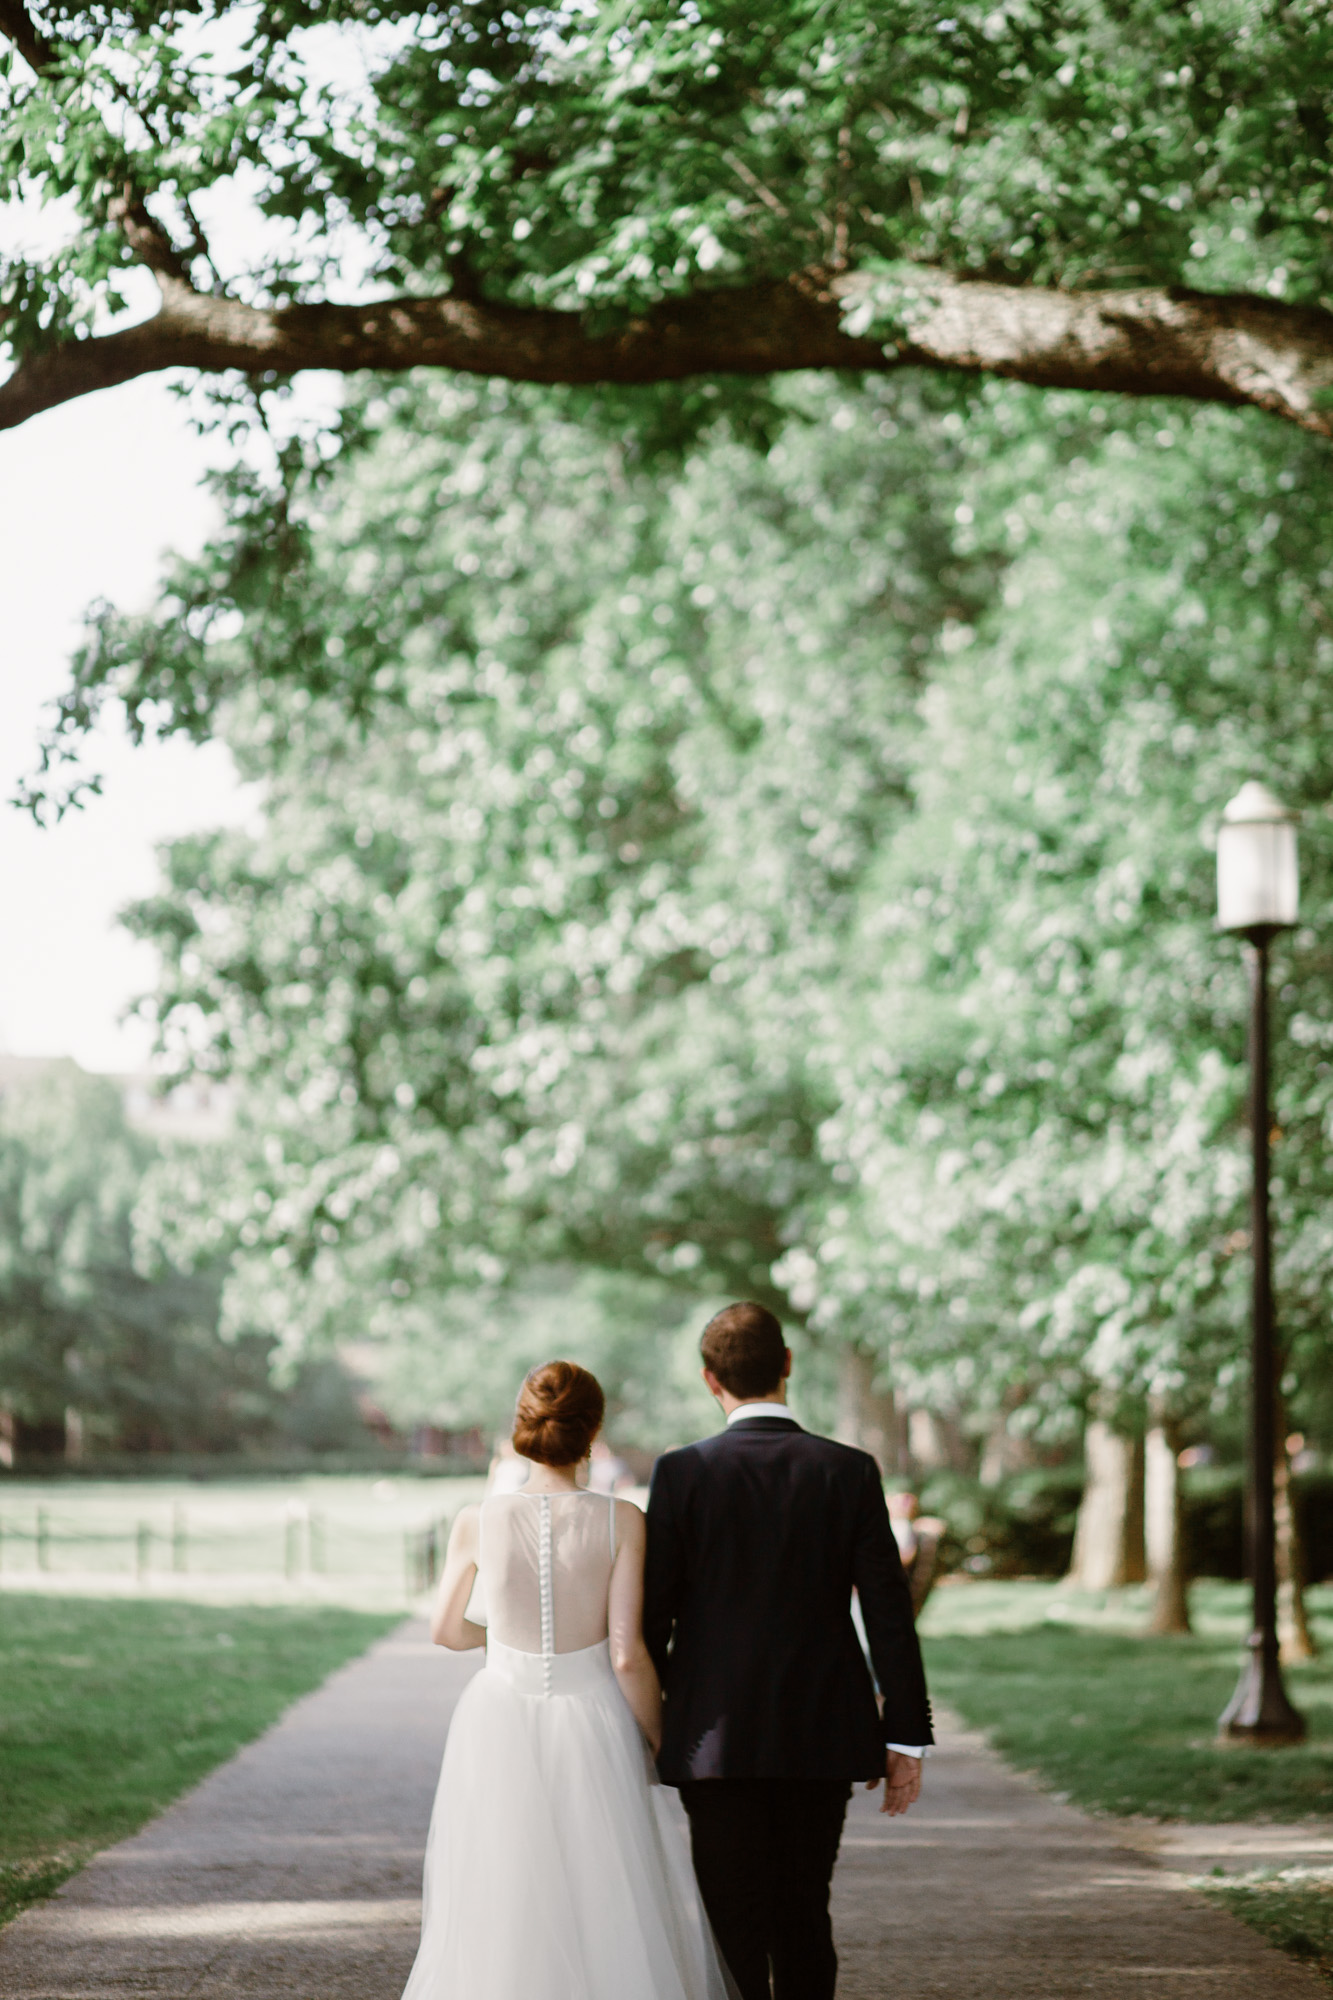 SarahMattozziPhotography-BlackTieWedding-WashingtonDC-39.jpg